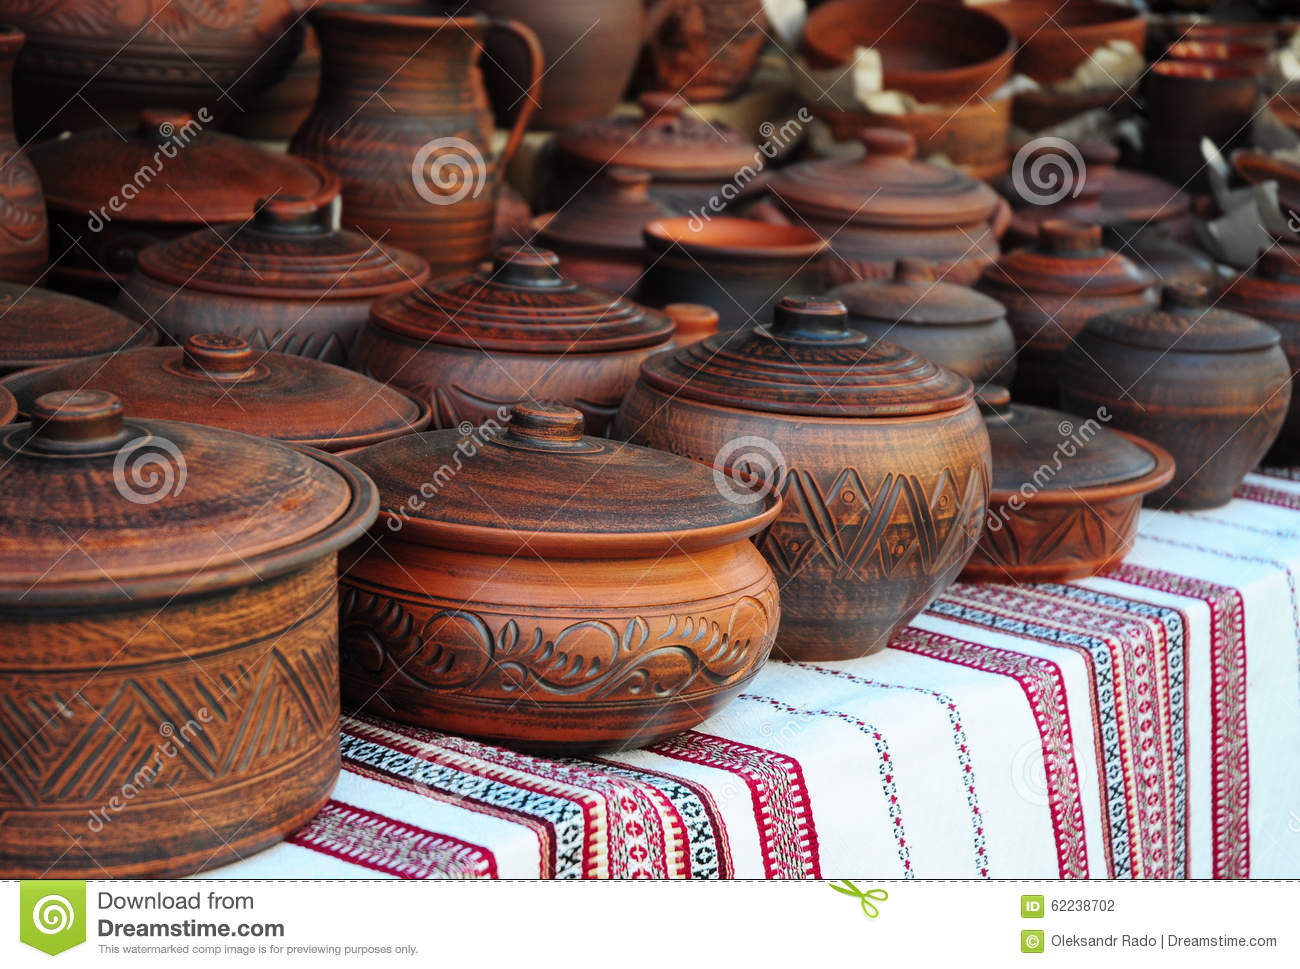 Unique Traditional Ceramic Jugs Decorative towel Showcase Pottery Clay for Sale Of Fresh Polévkáč – Cena 120 Pottery Clay for Sale